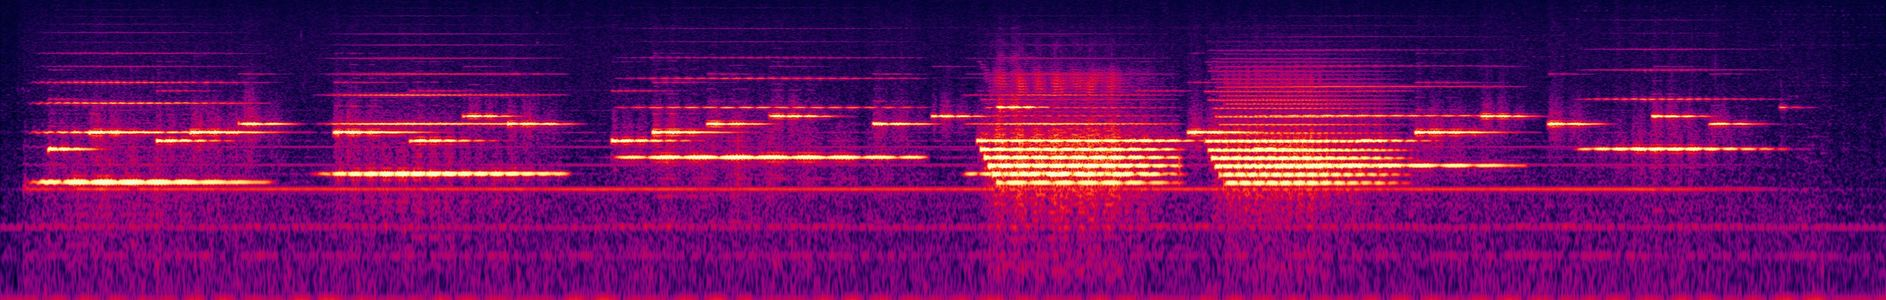 Time On Our Hands - Spectrogram.jpg